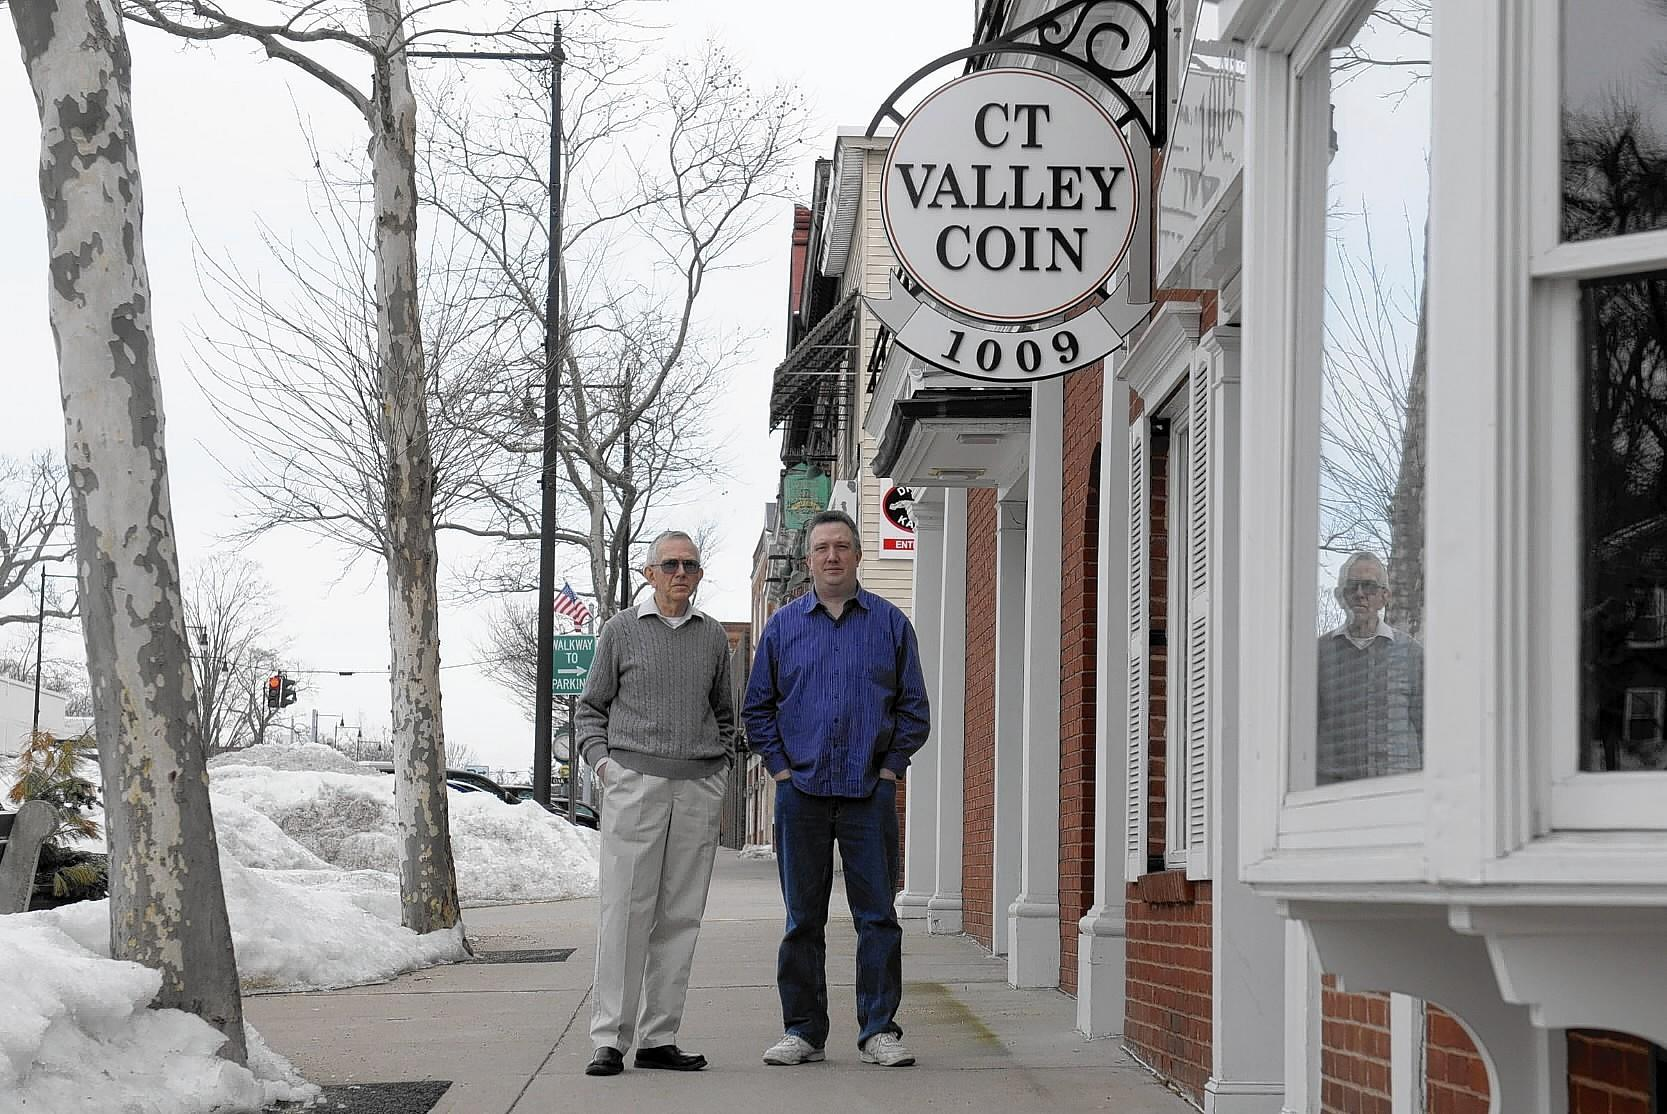 John Muller, left, and his son David Muller are now just getting back on their feet after a fire distroyed their business, Connecticut Vally Coin in Manchester in October last year. The pawnbrokers and coin dealers will be open for new customers in April at their new location on Main Street in Manchester.